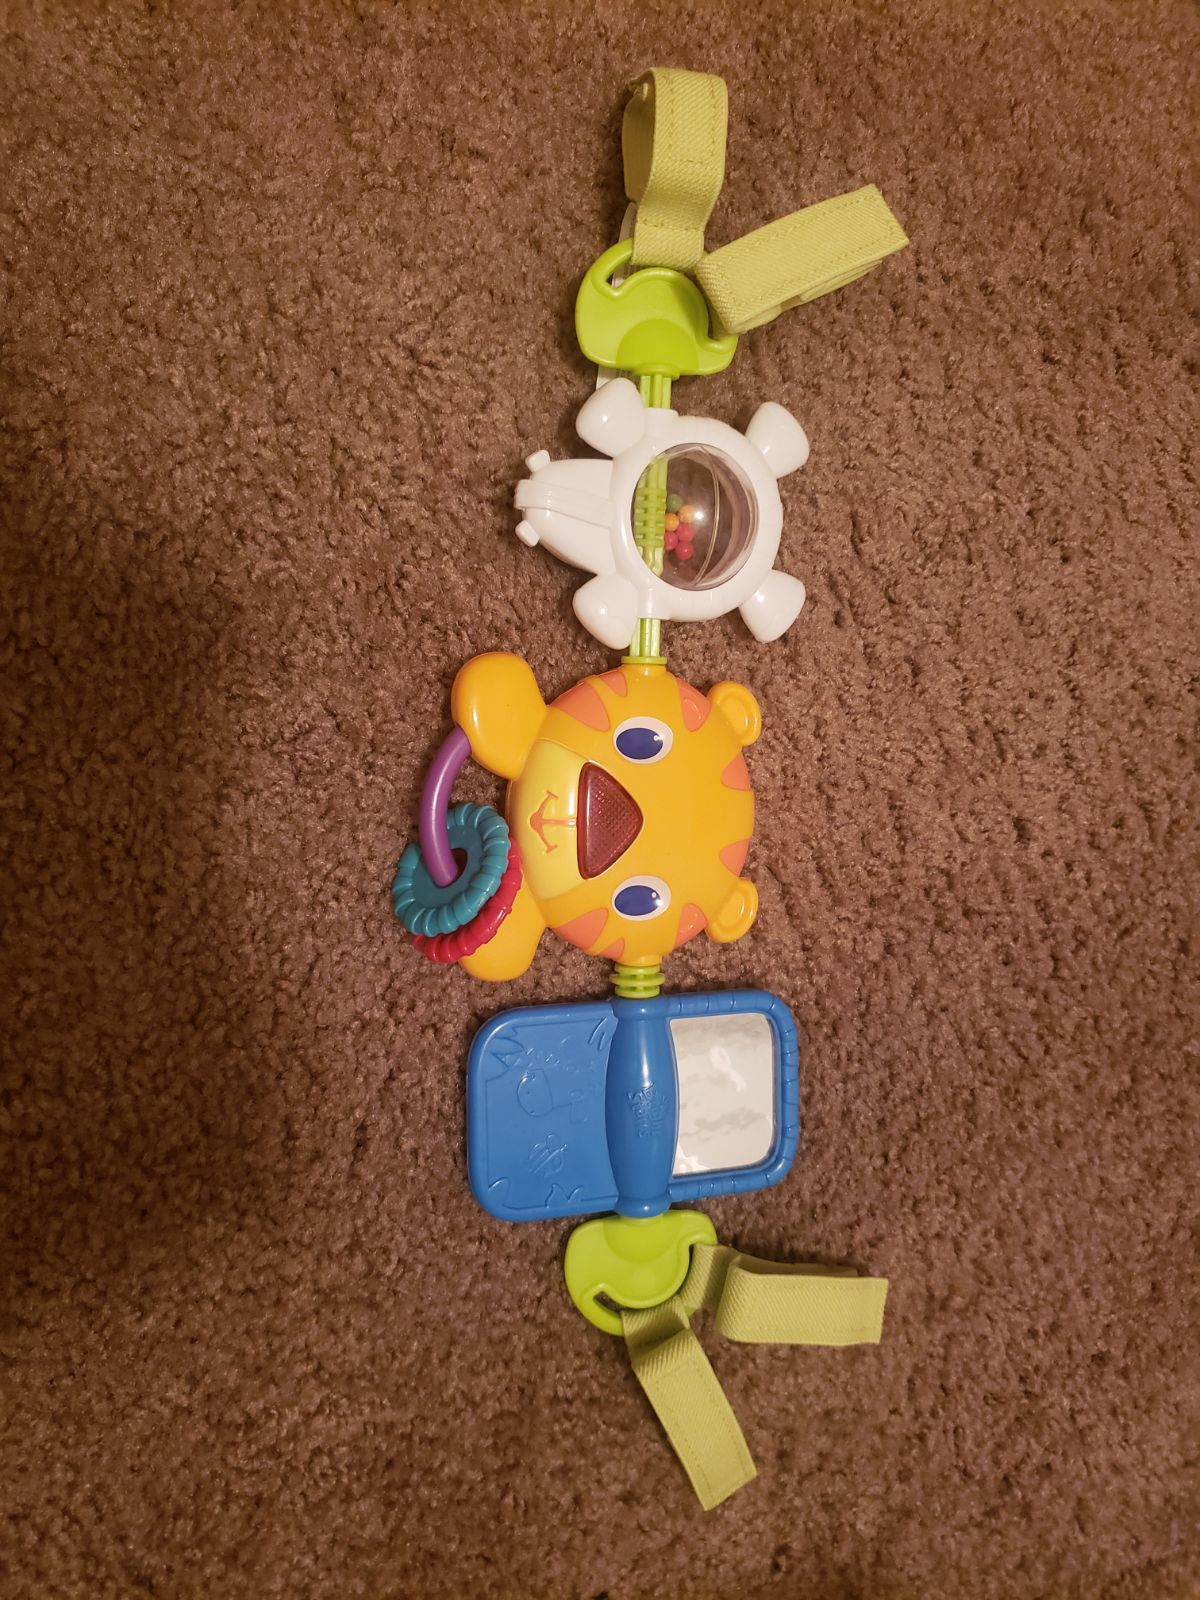 Baby carseat toy